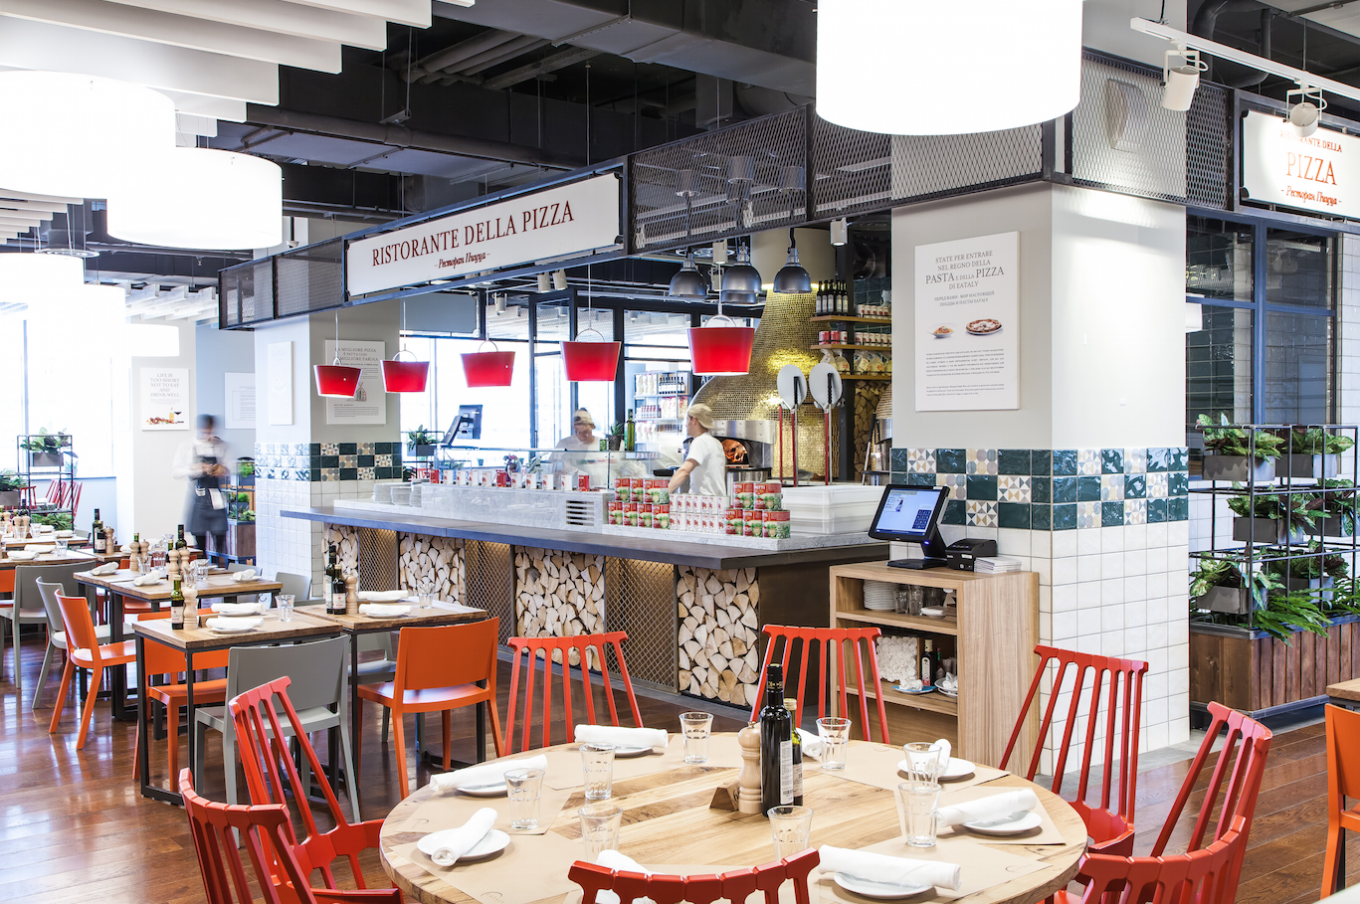 Visitors who have worked up a hunger can enjoy freshly-made food at Eataly's in-house restaurants. EATALY